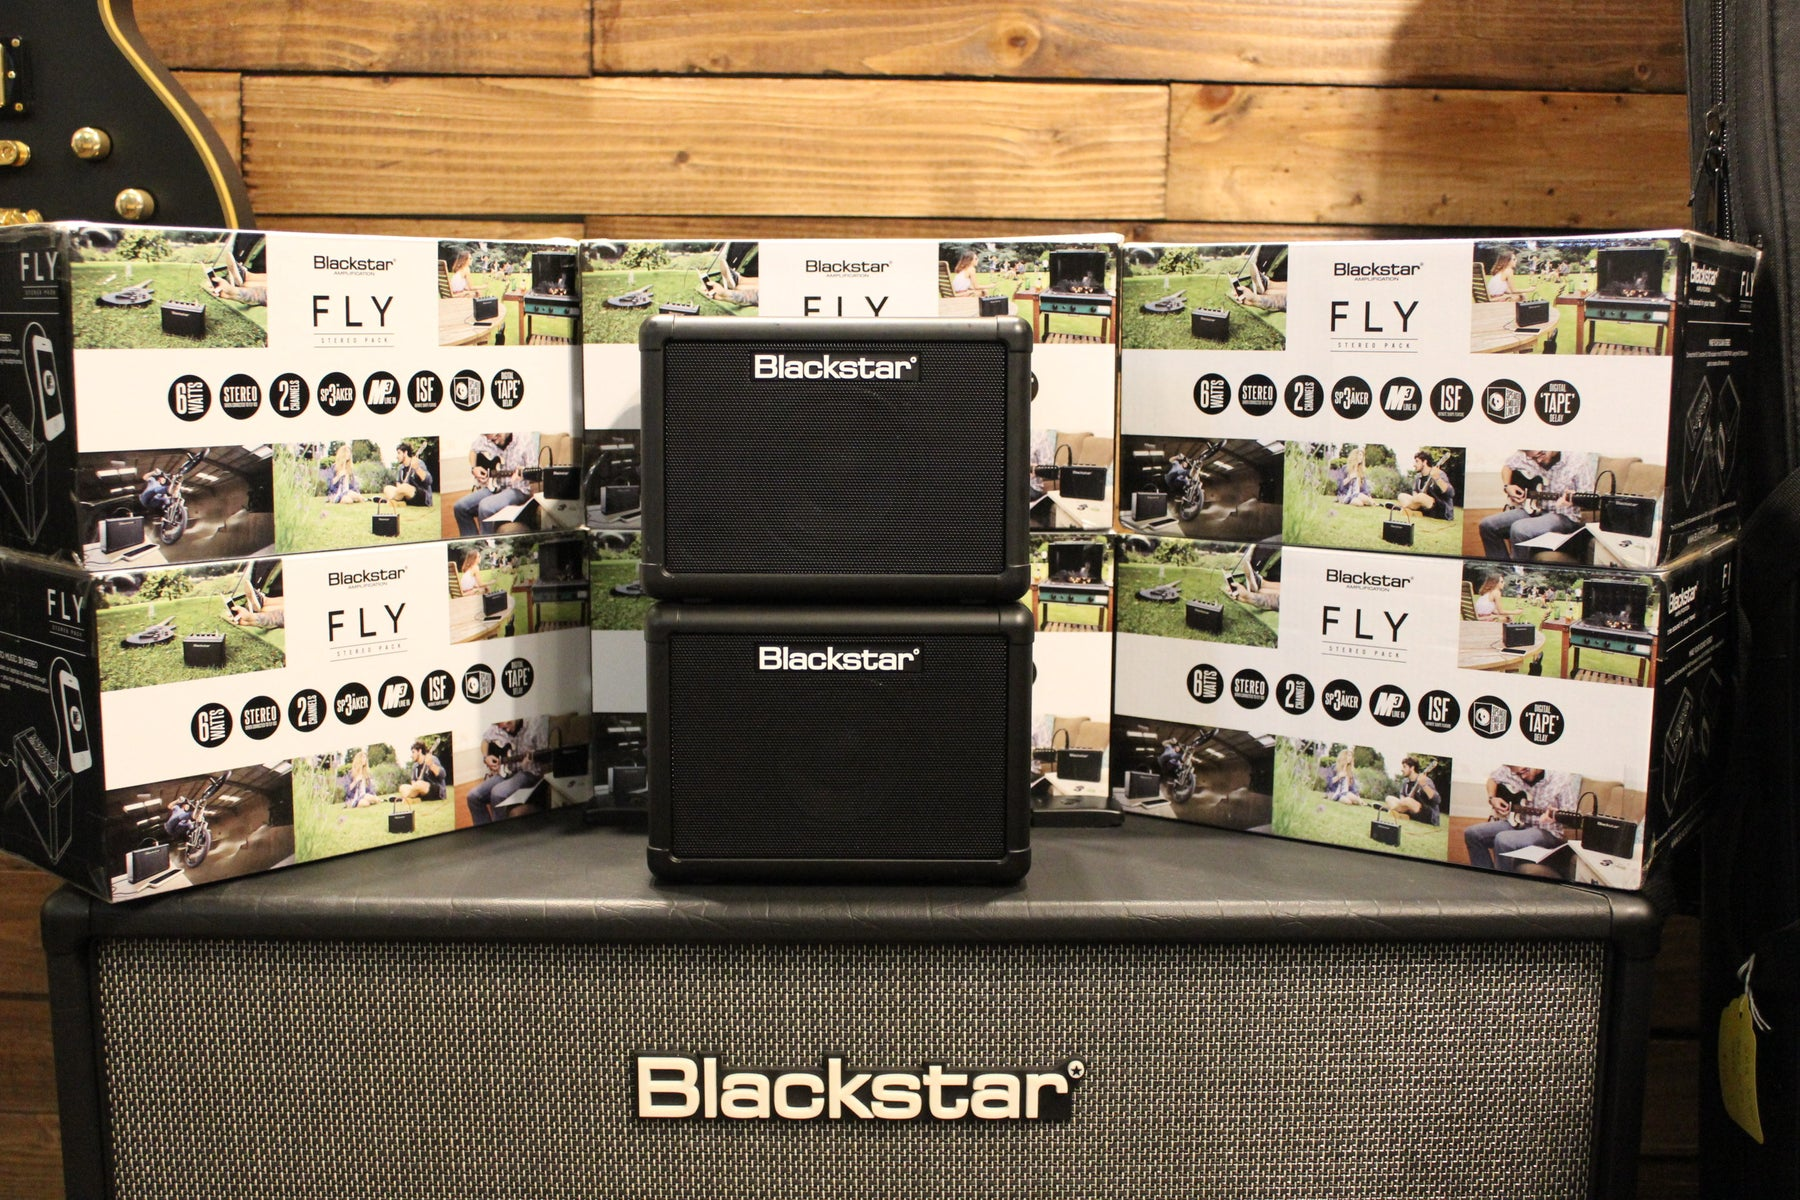 Win a Blackstar Fly 3 Pack